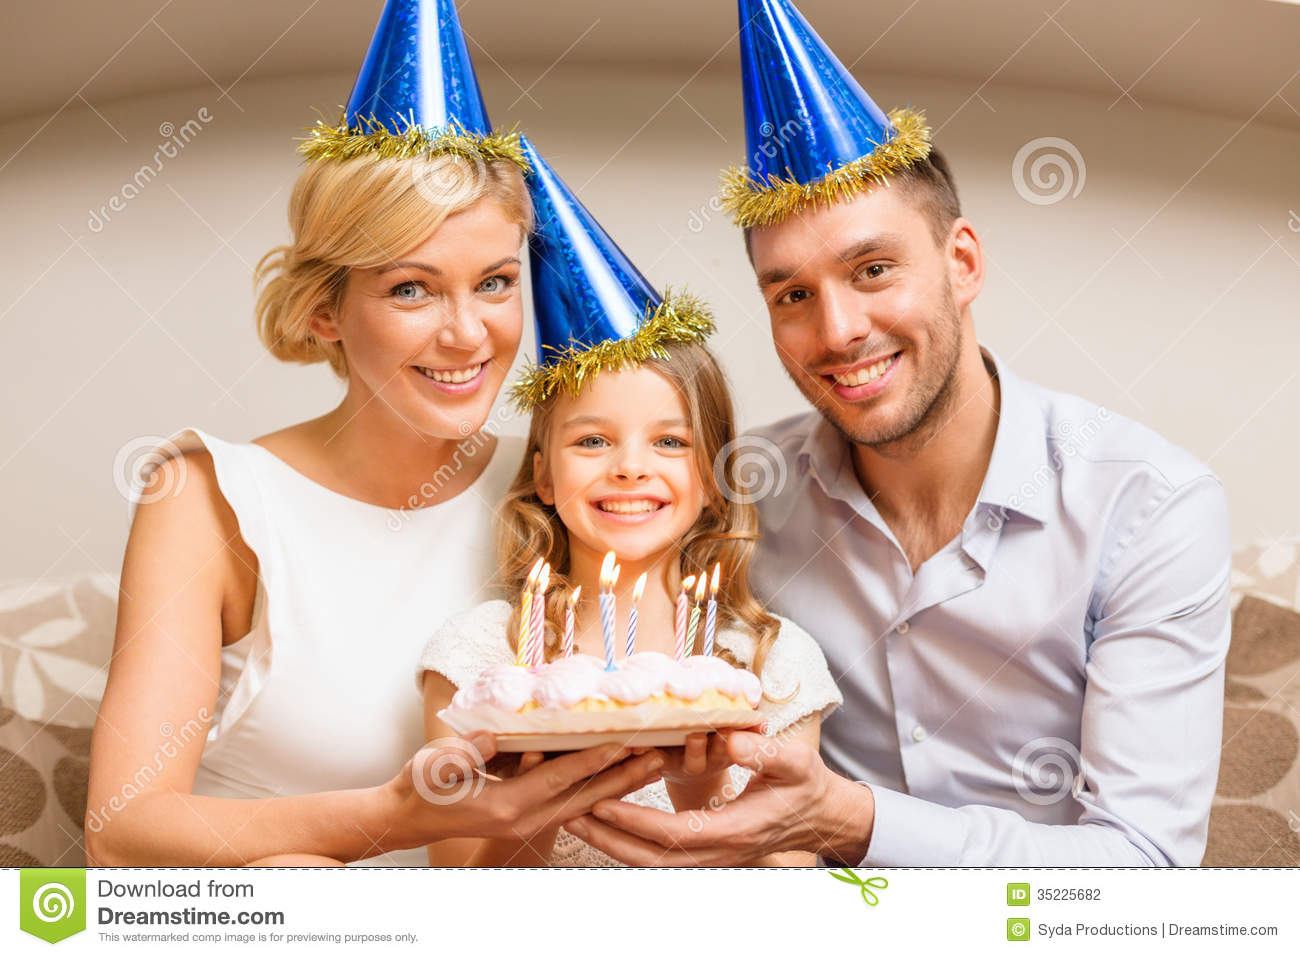 Smiling Family In Blue Hats With Cake Stock Photography